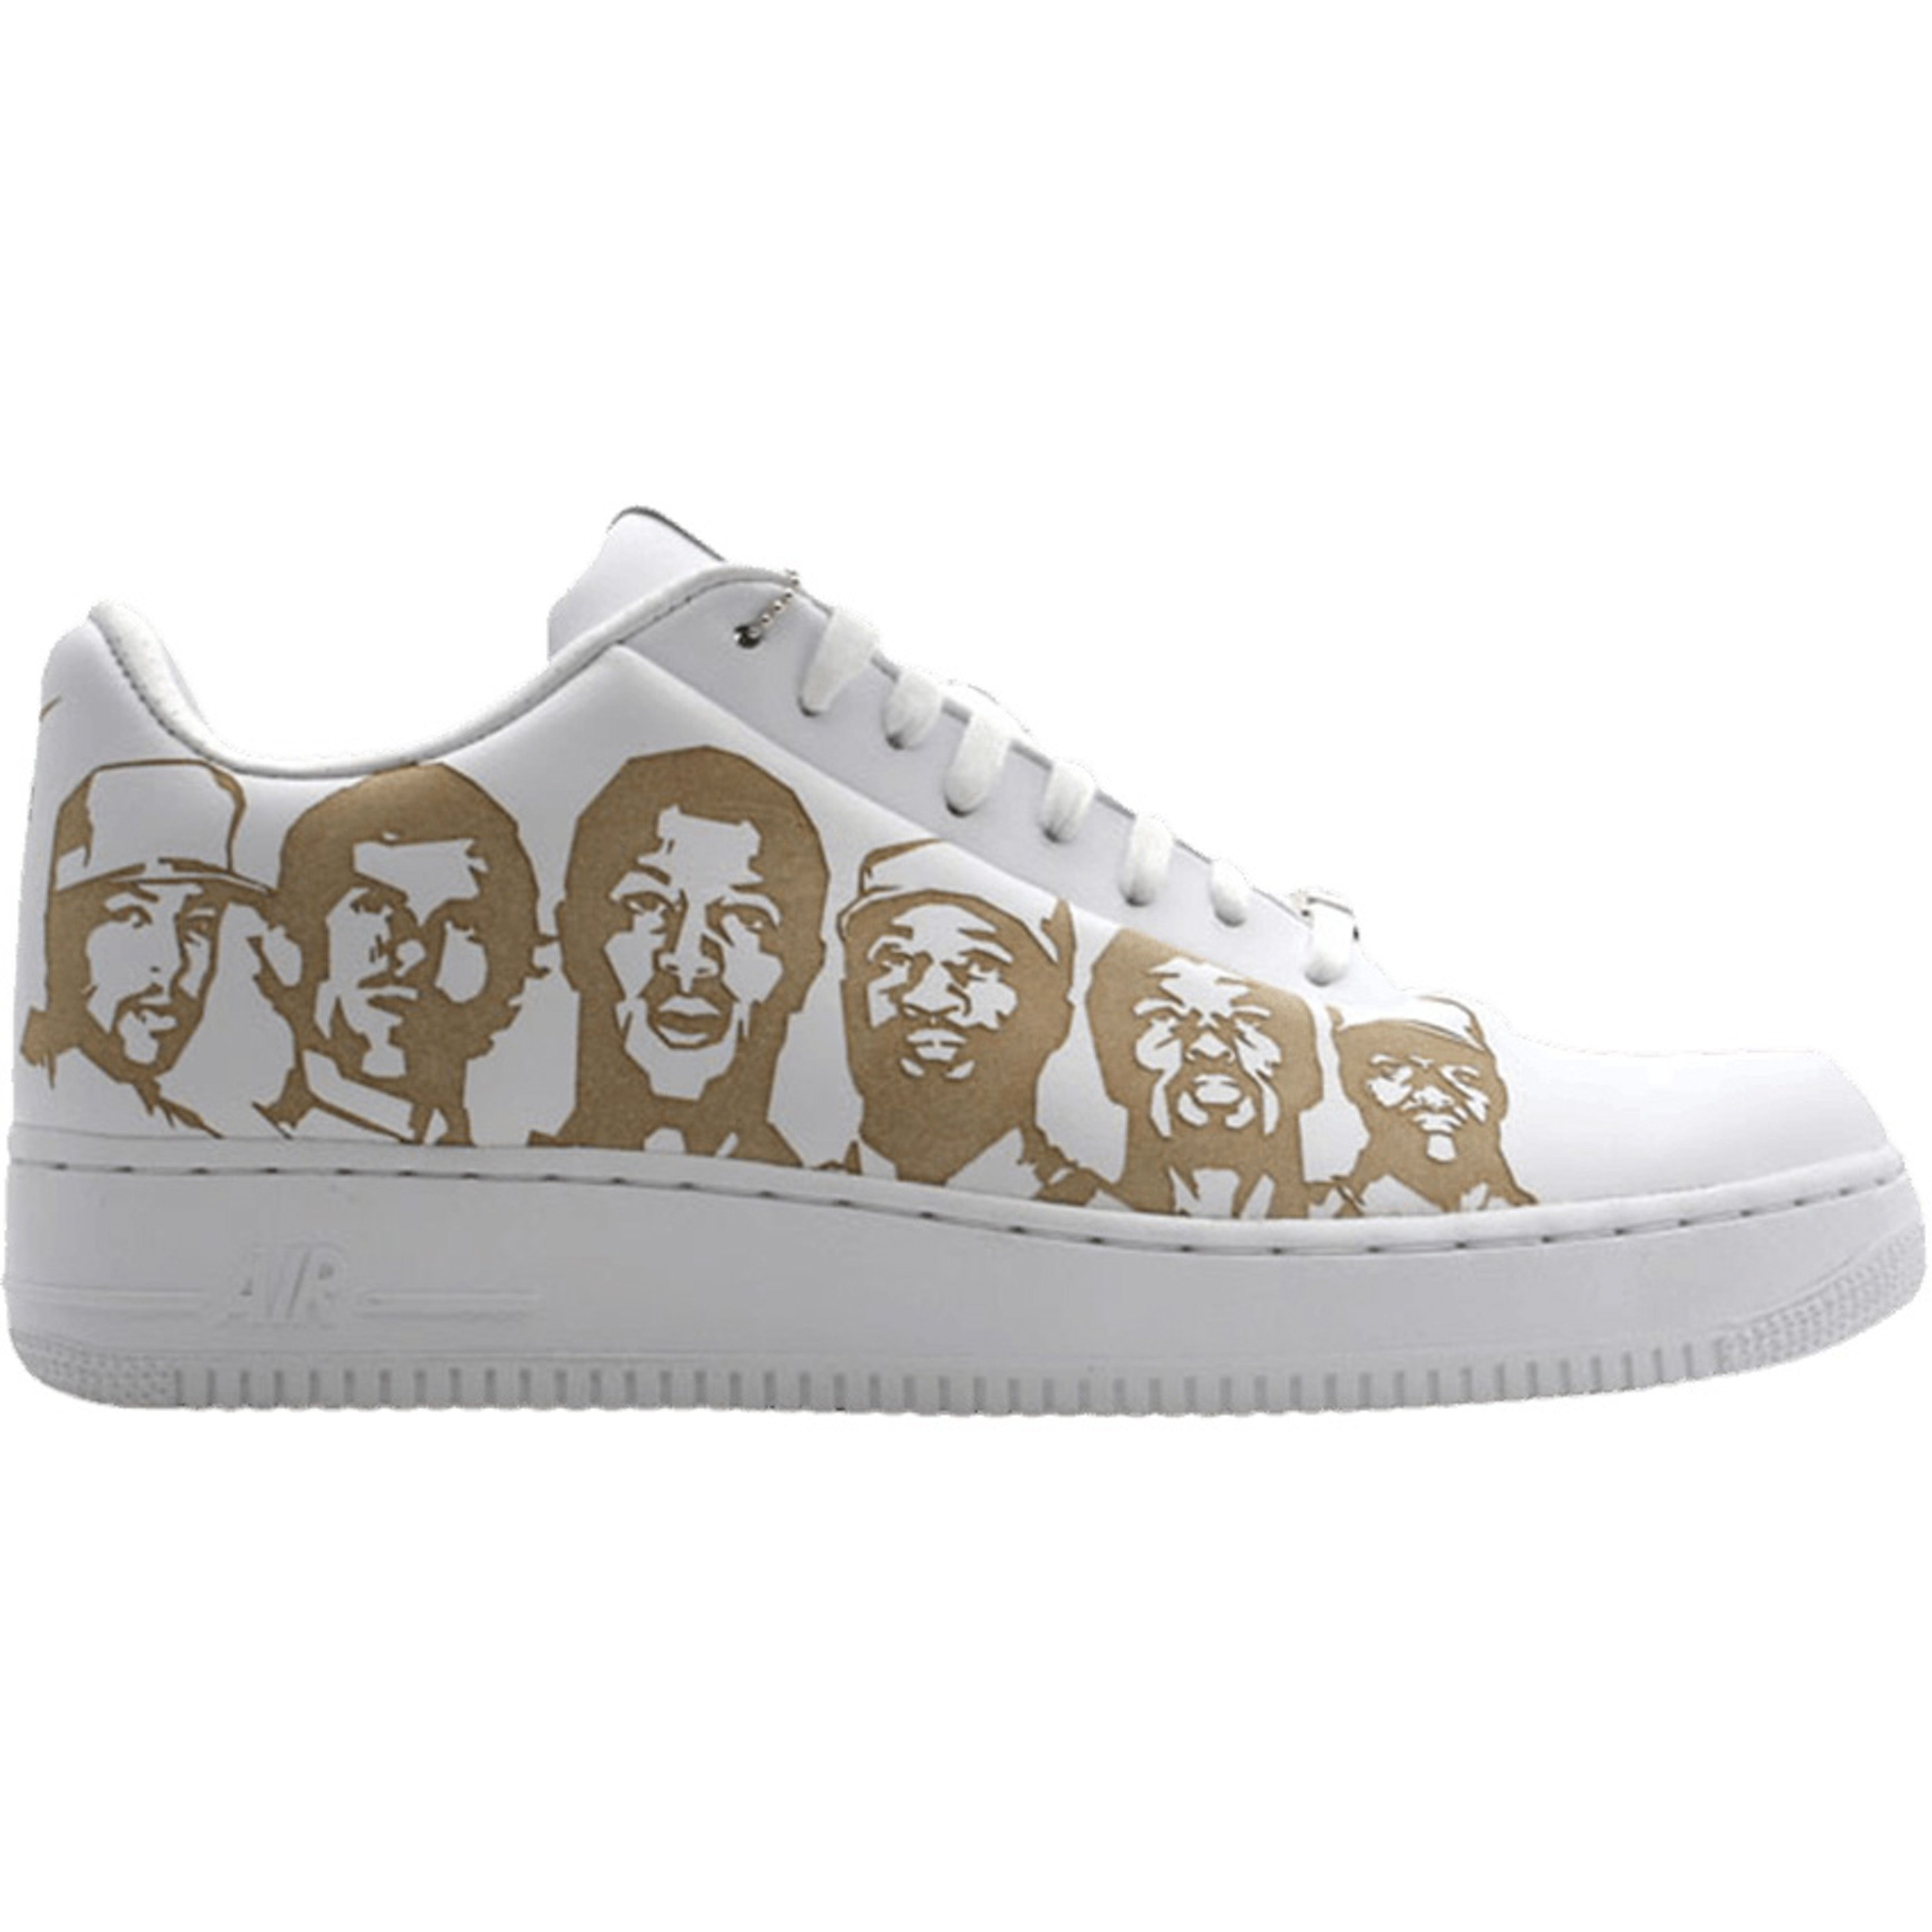 Nike Air Force 1 SPRM '07 Players (315184-111)